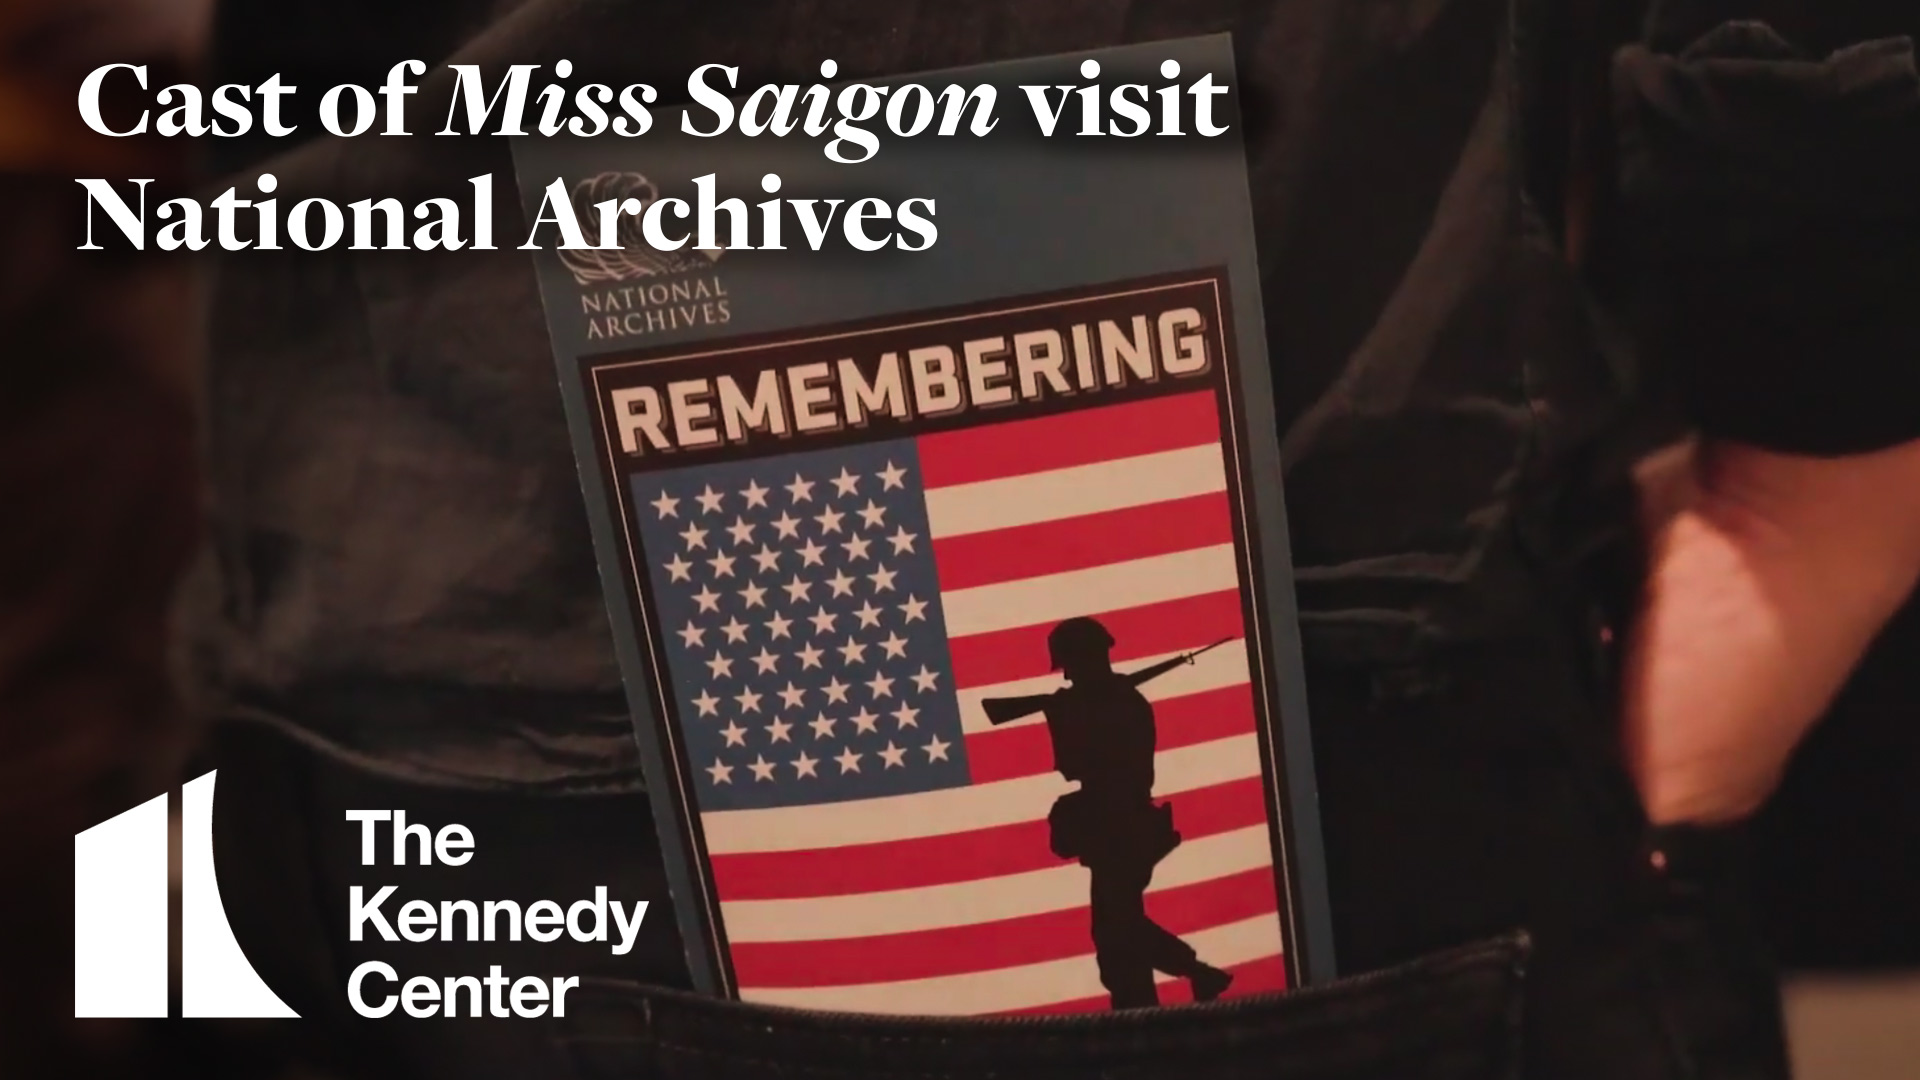 Cast of Miss Saigon Visit National Archives